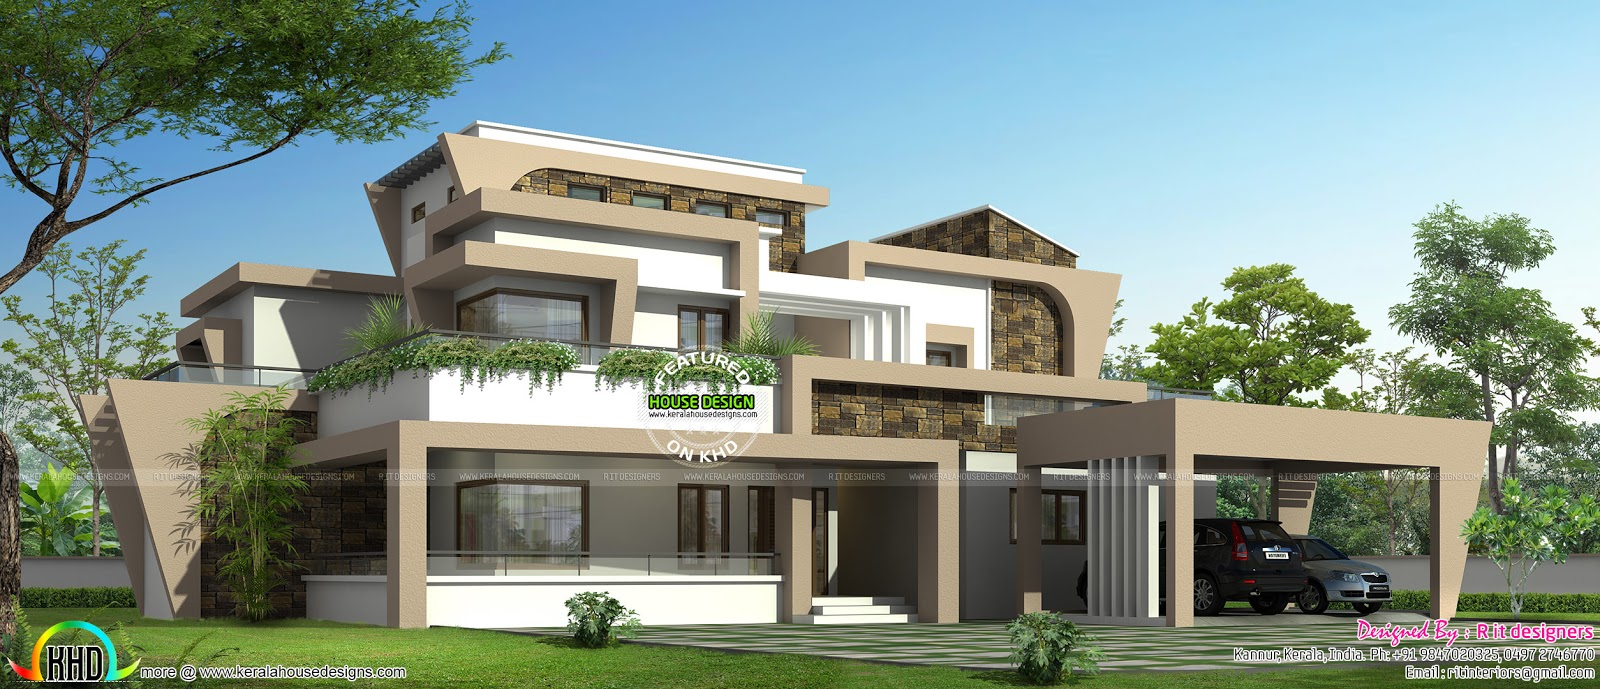 Unique modern home design in kerala kerala home design for Contemporary house in kerala